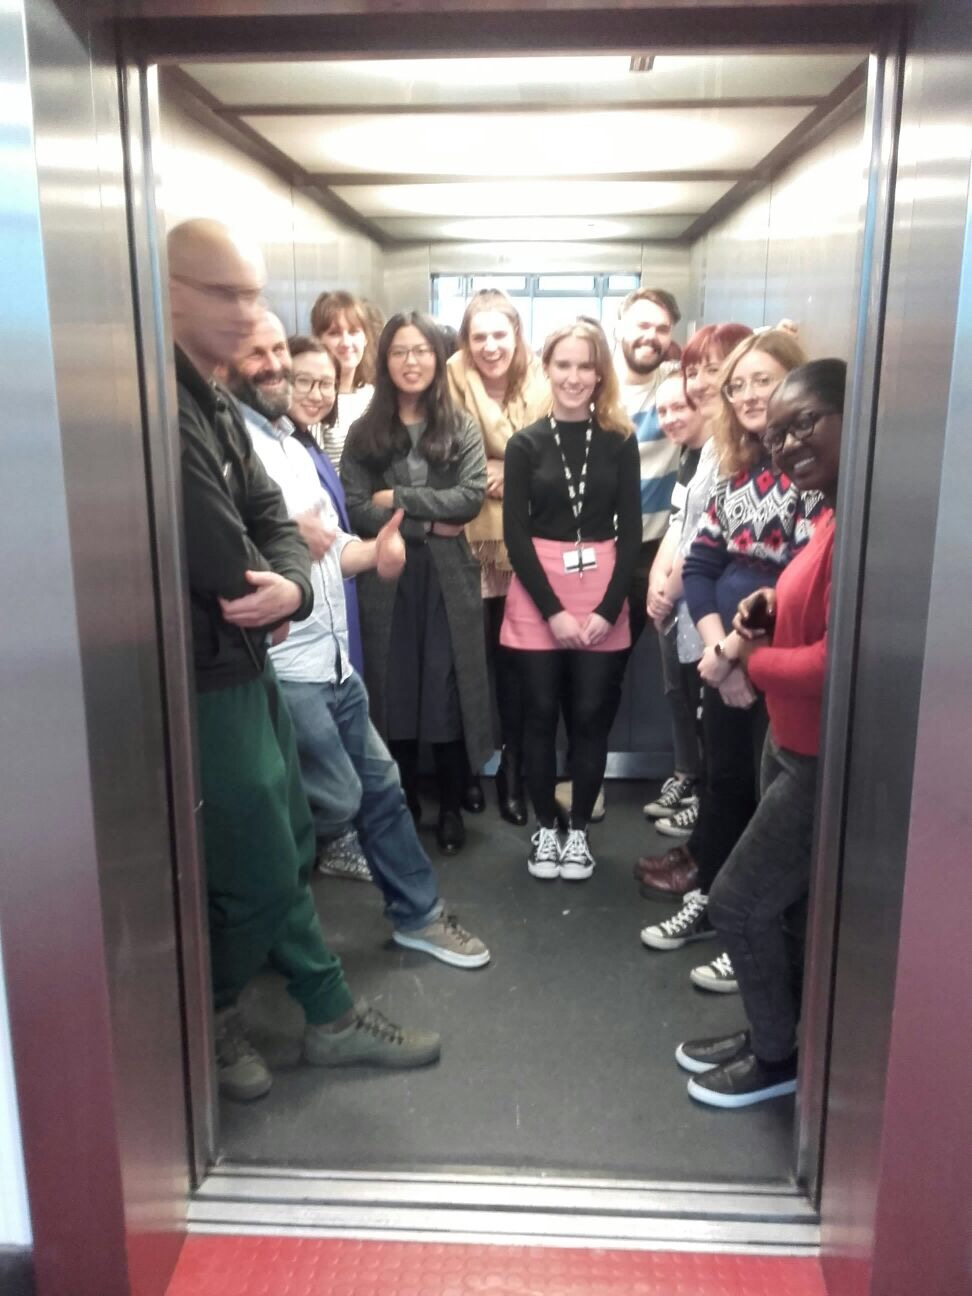 How many product designers can fit in an elevator?